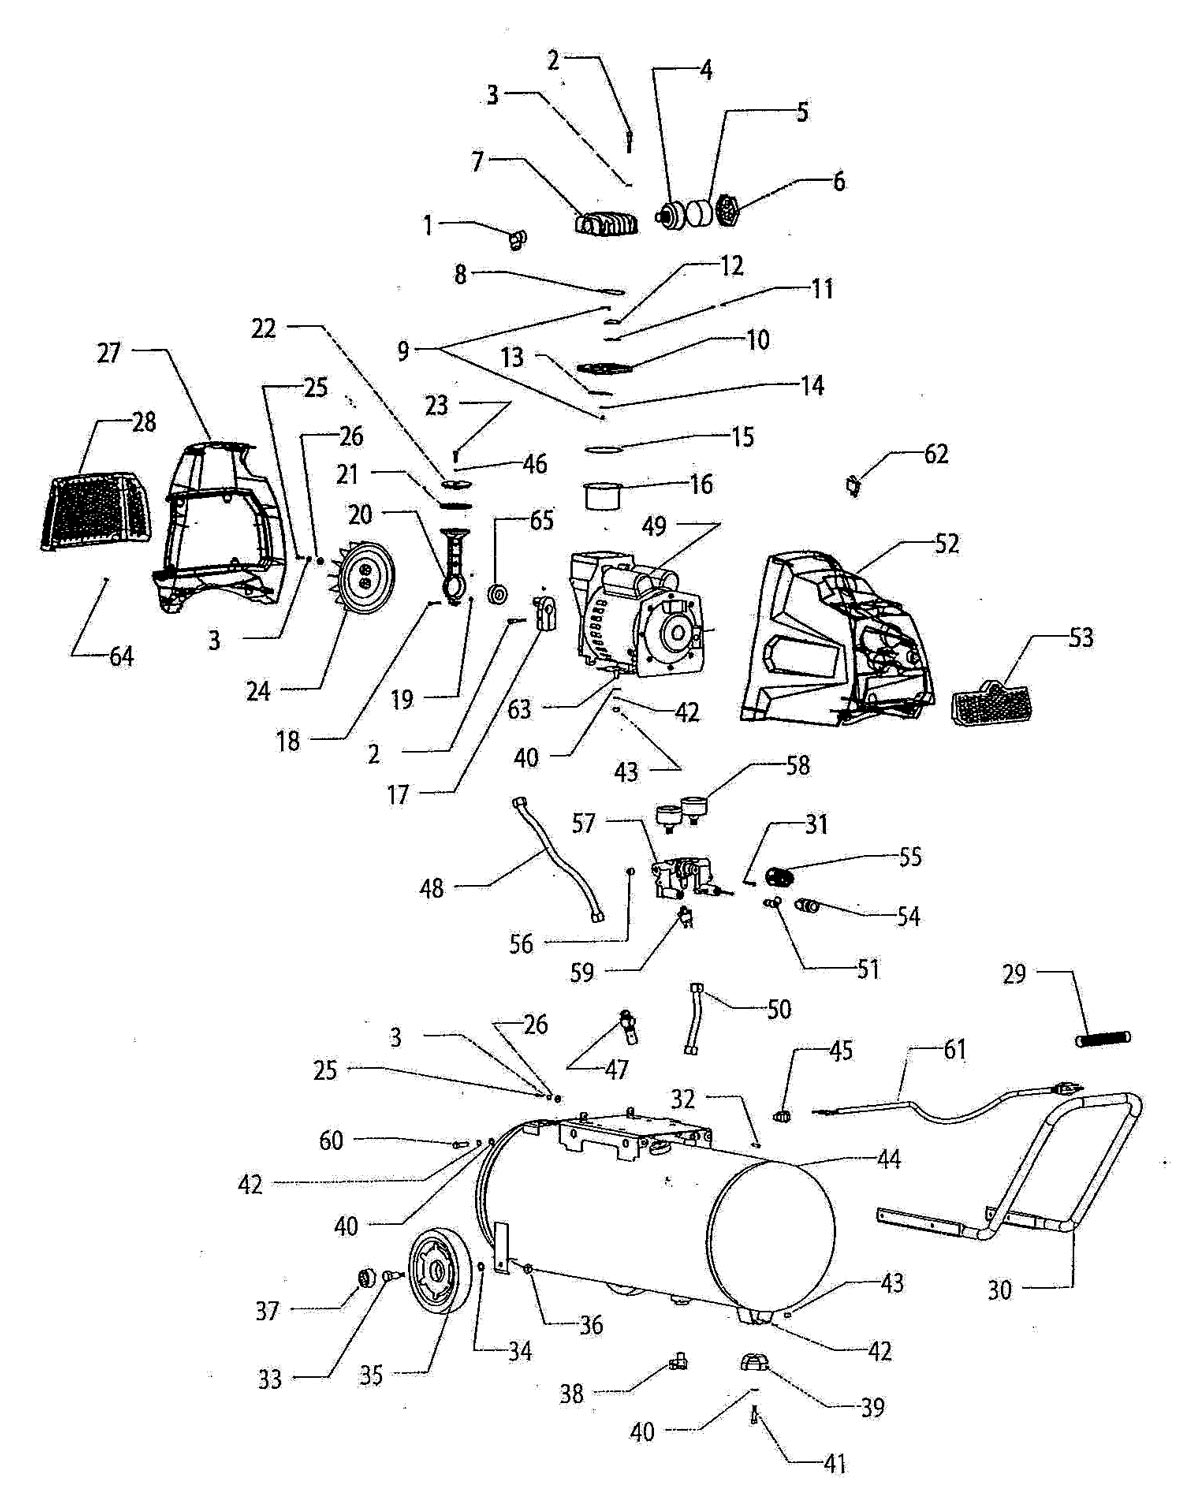 hight resolution of f217hkl 236005 air compressor parts schematic